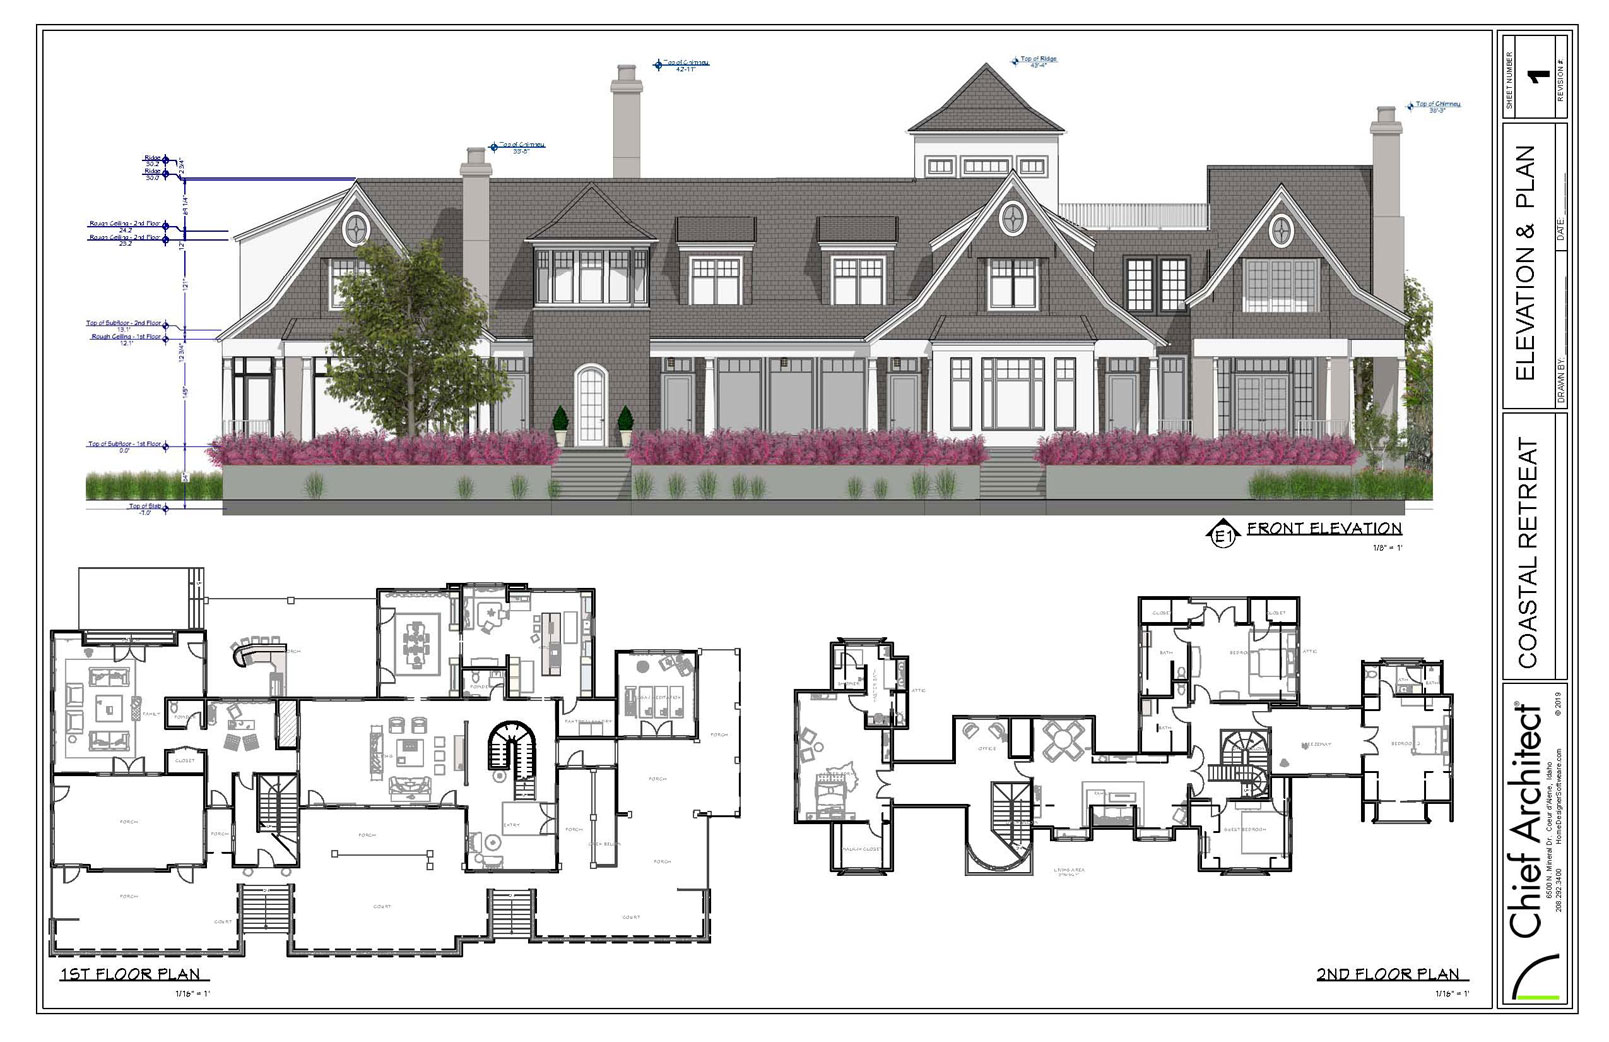 Layout sheet with a front elevation and two floor plan views.